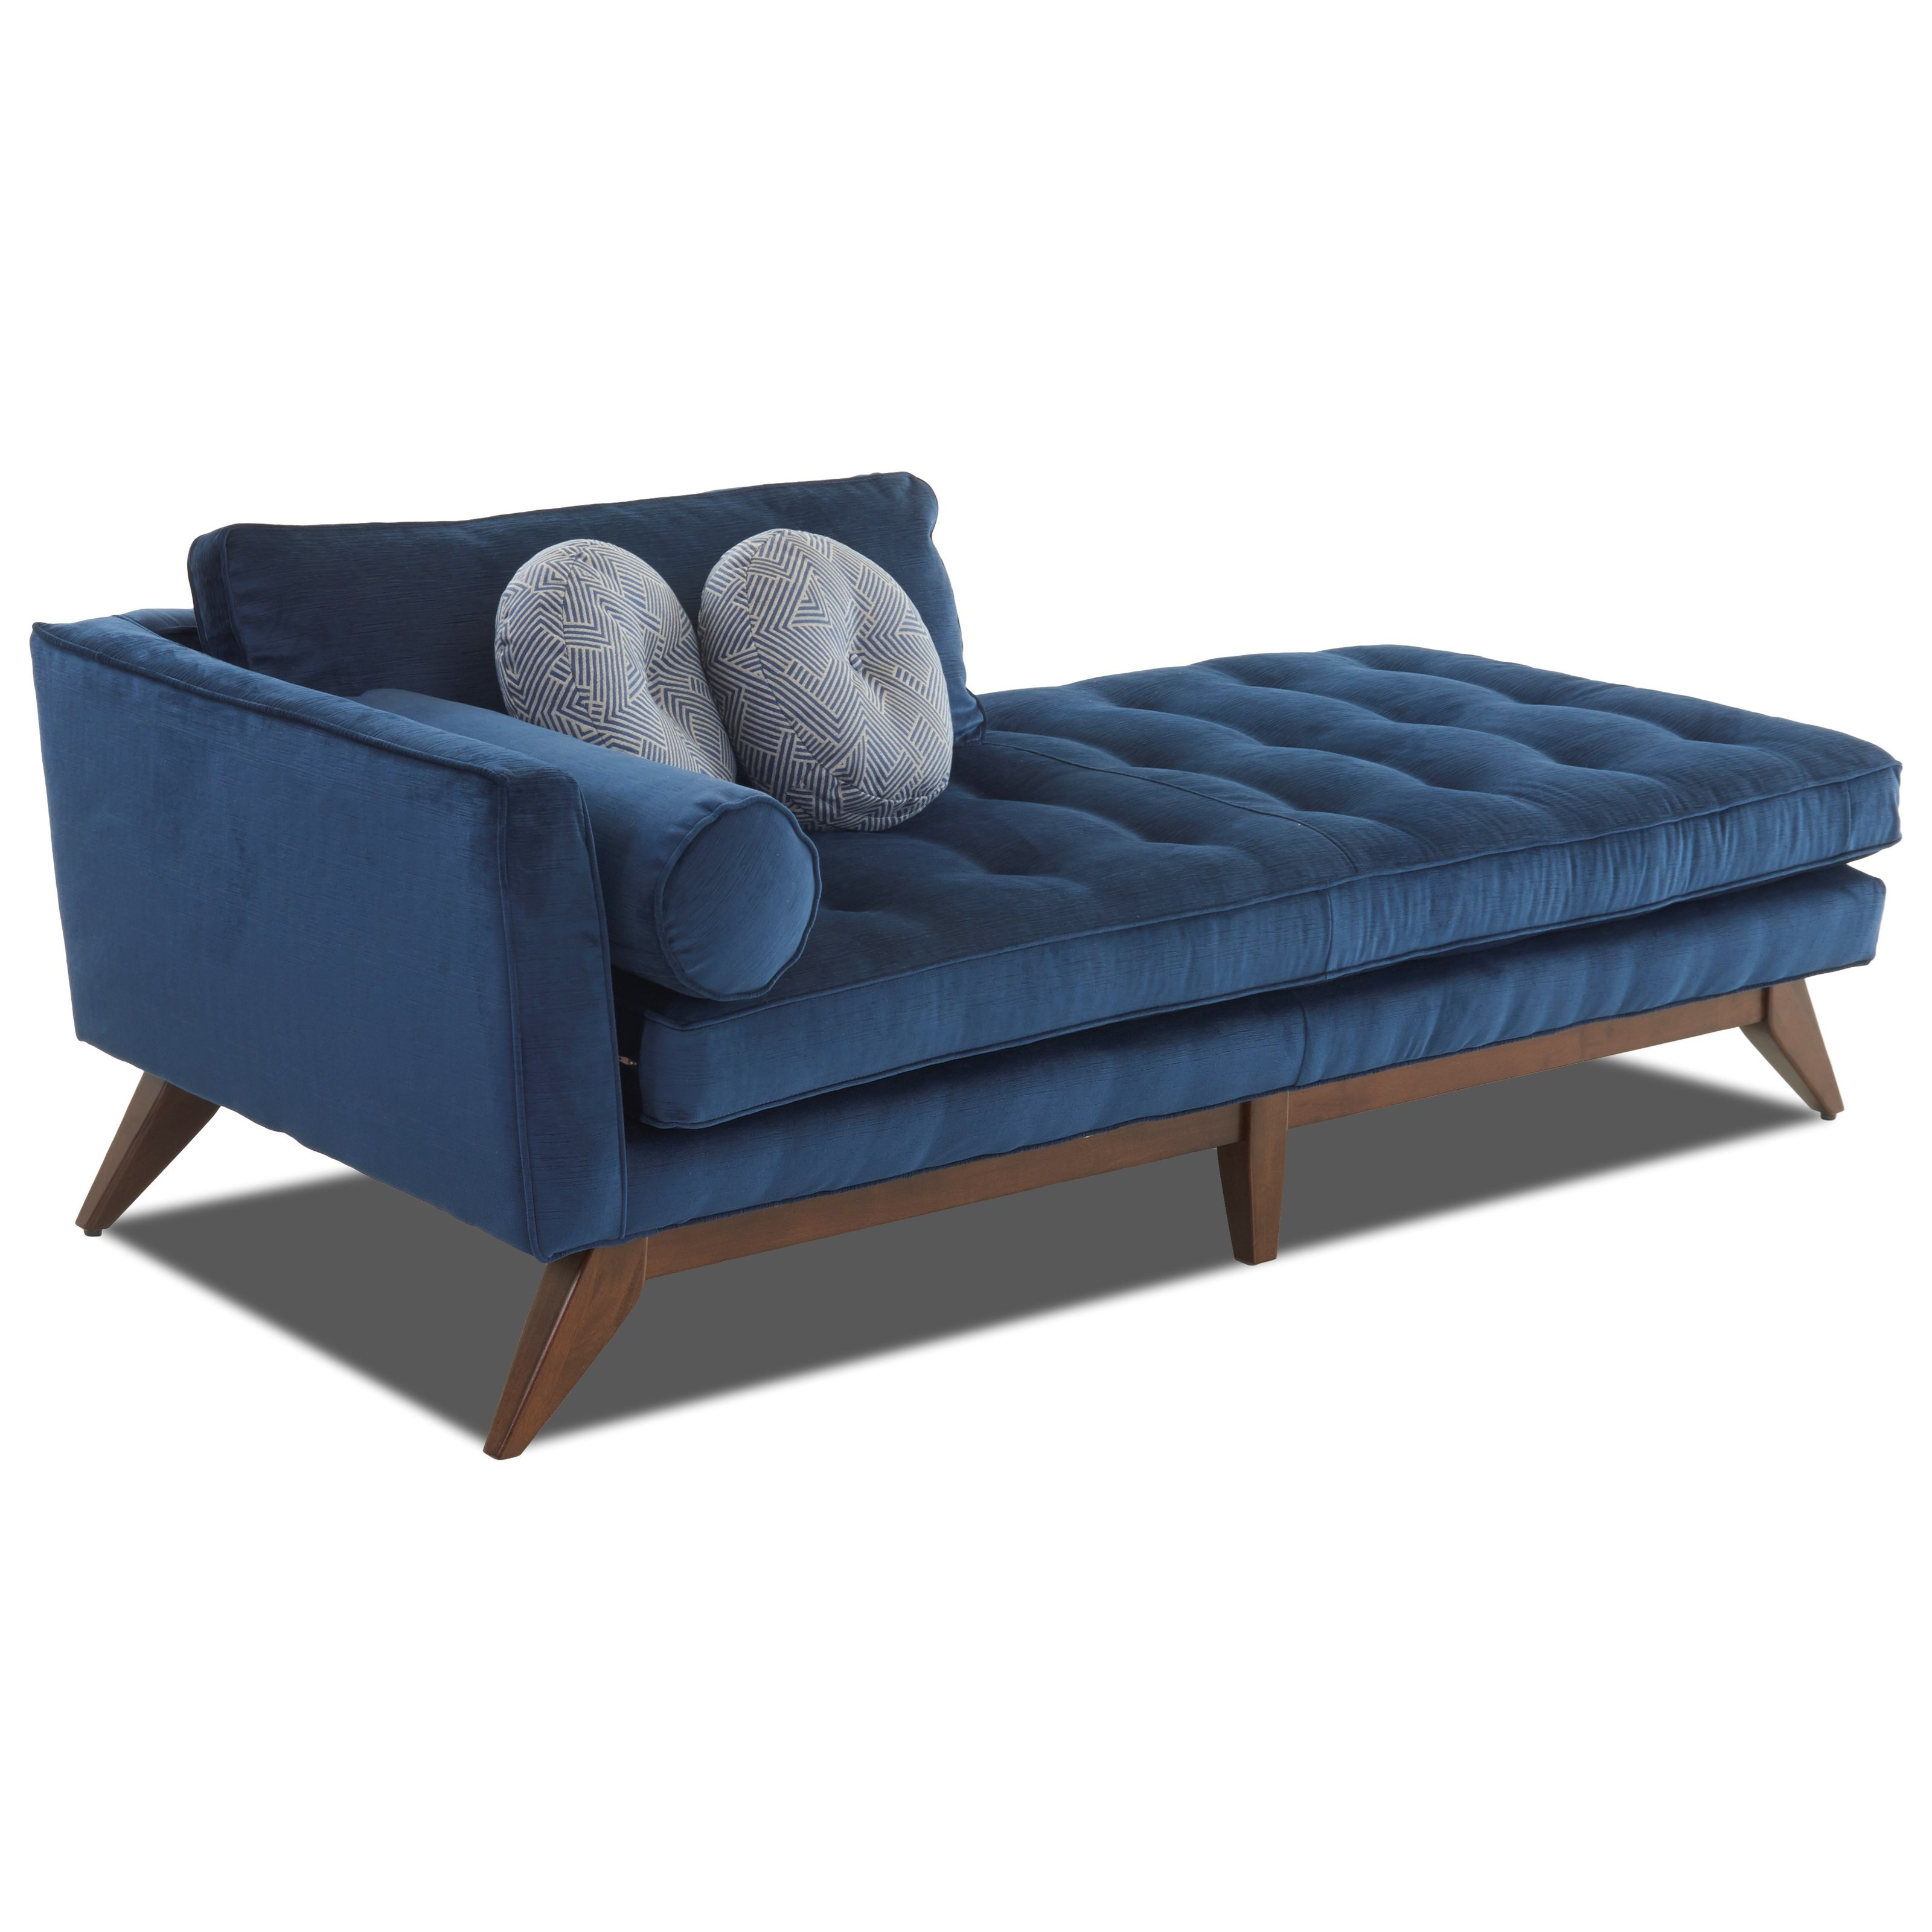 Mid-Century Modern Chaise Lounge with Left-Facing Arm